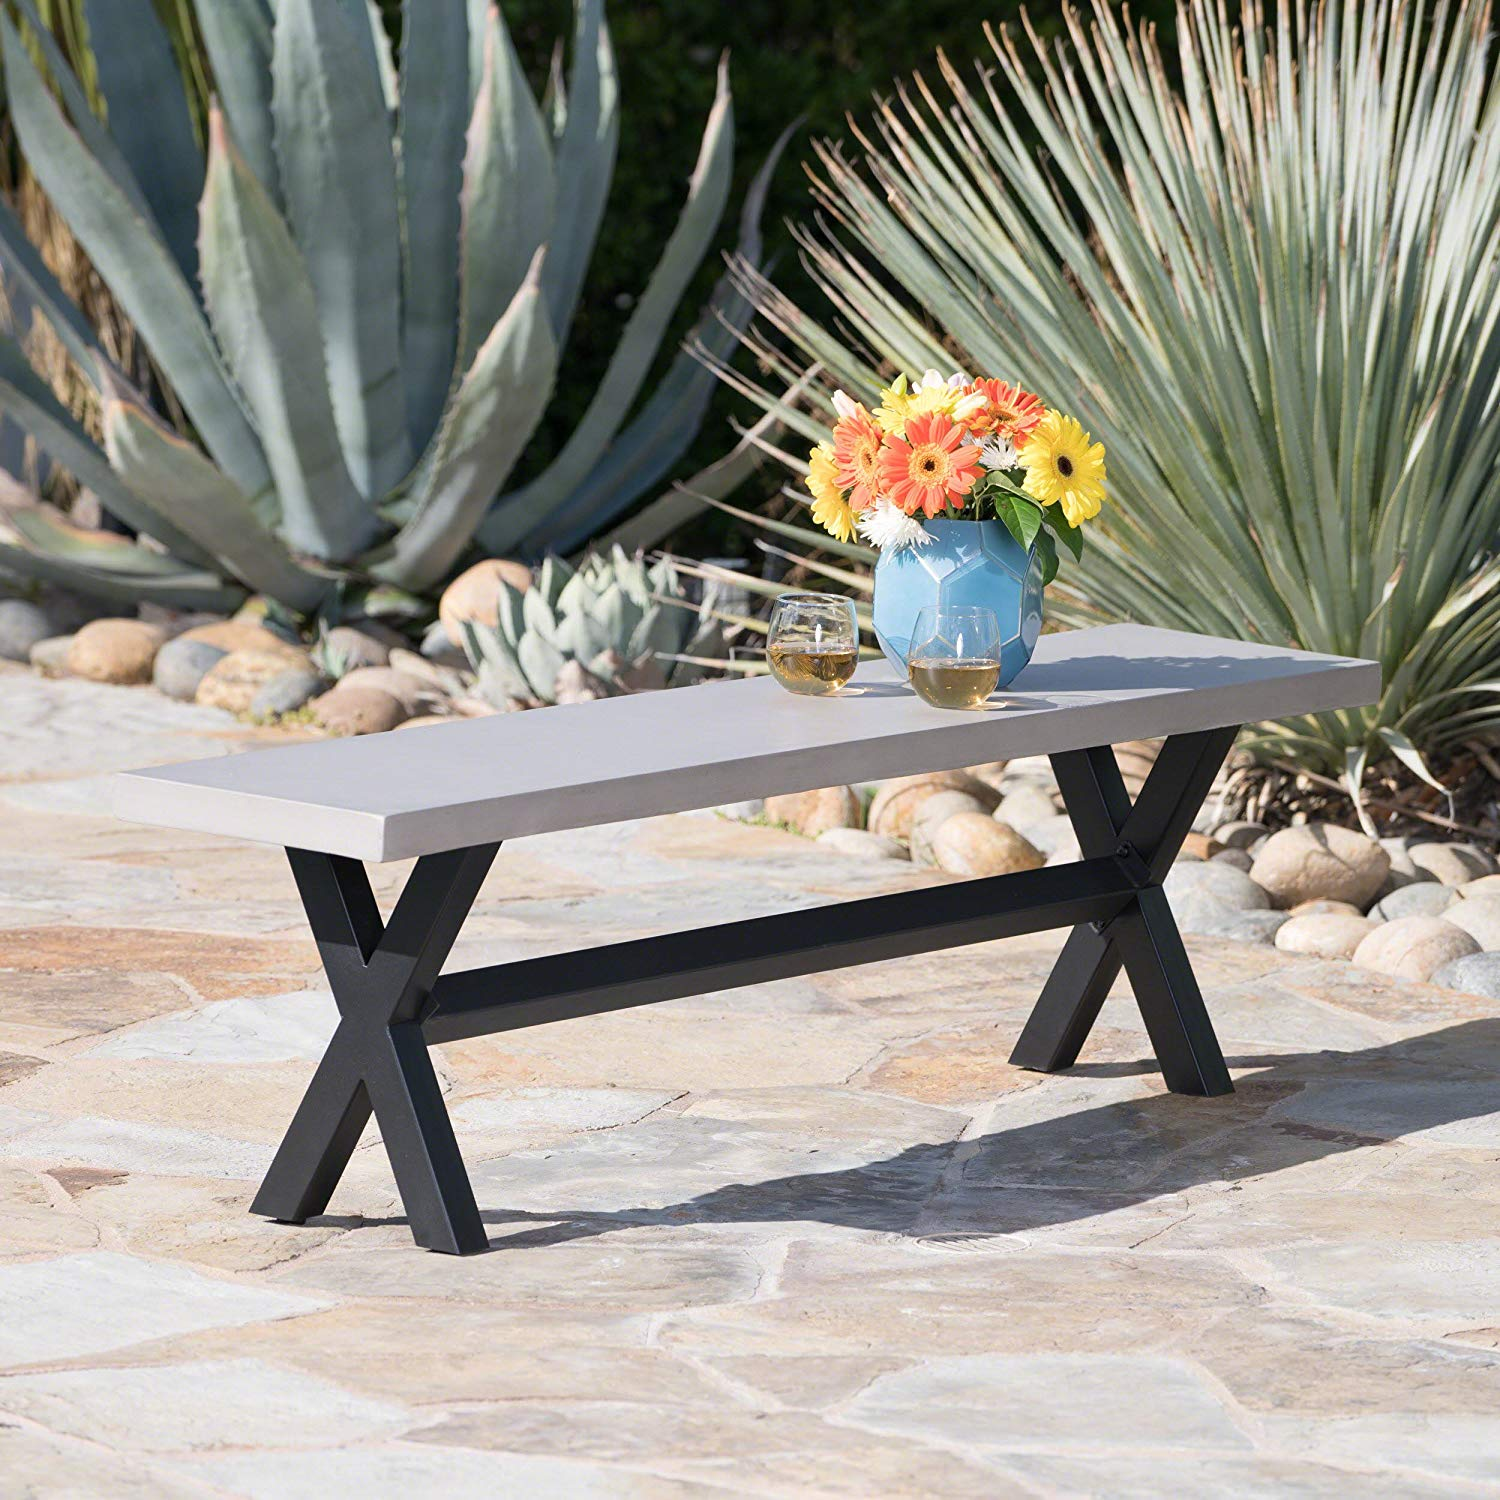 This Beautiful Outdoor Bench By Great Deal Furniture Is Known